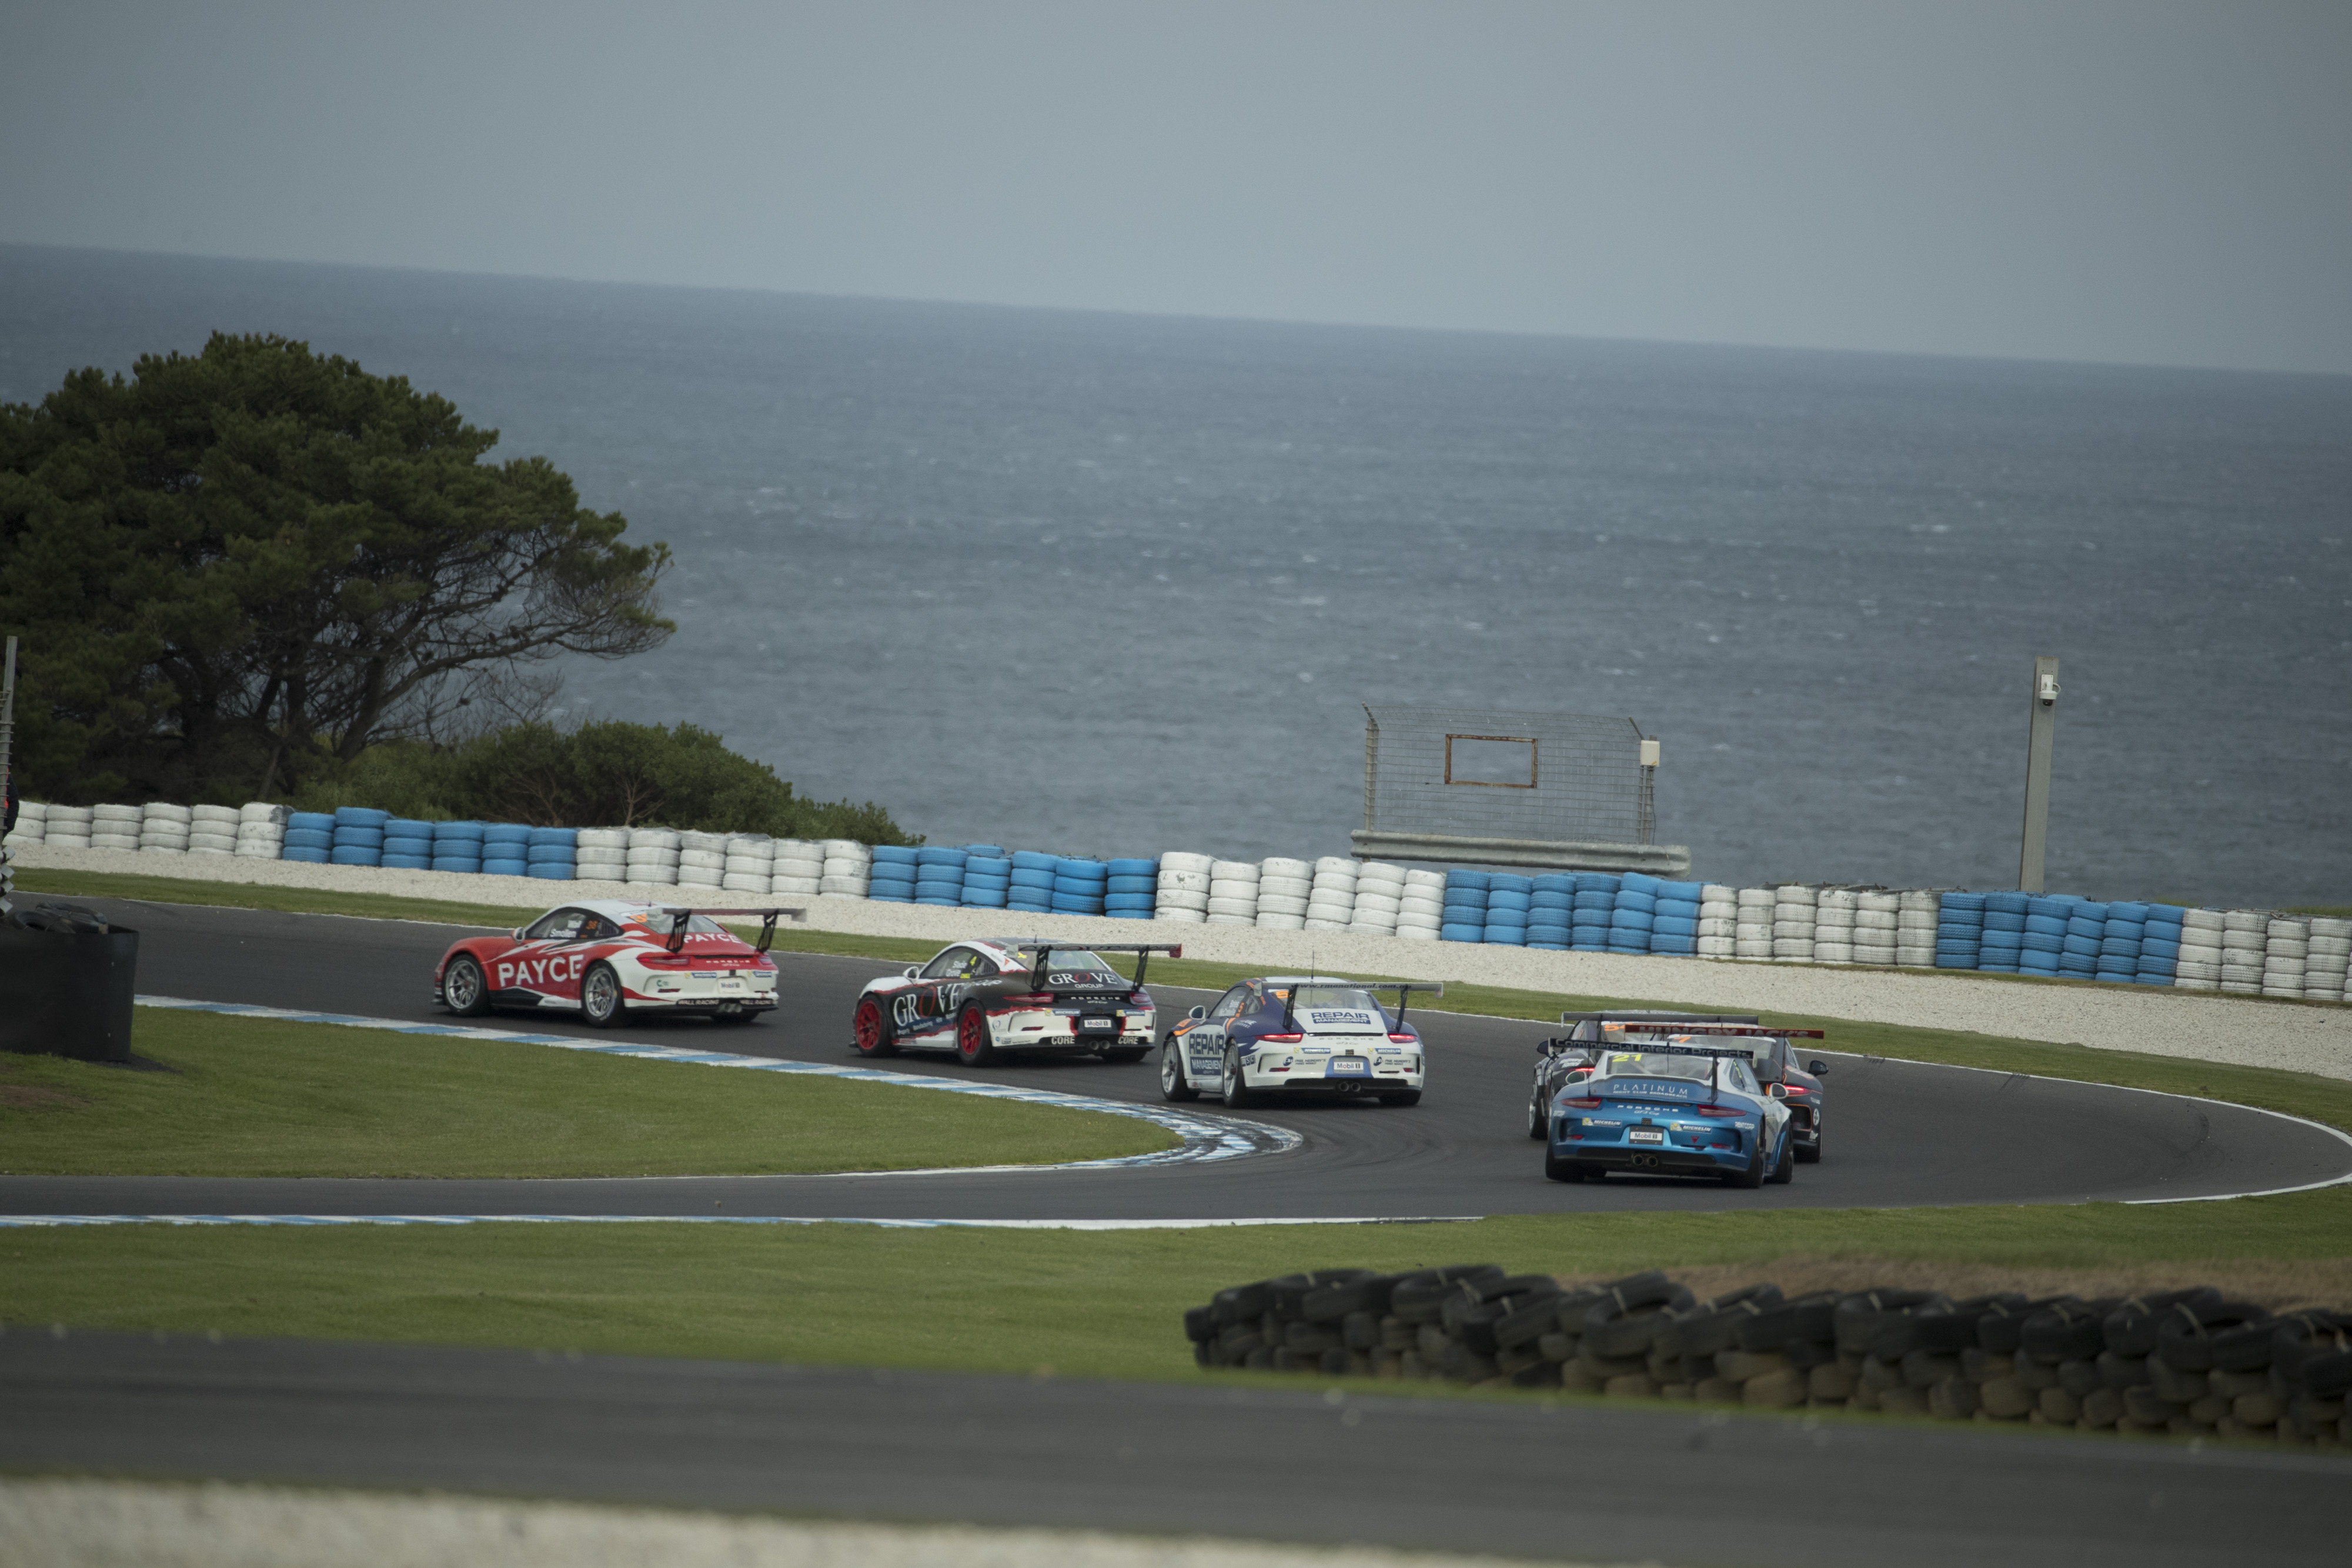 p38-Wall-CarreraCup-R3-2017-02256